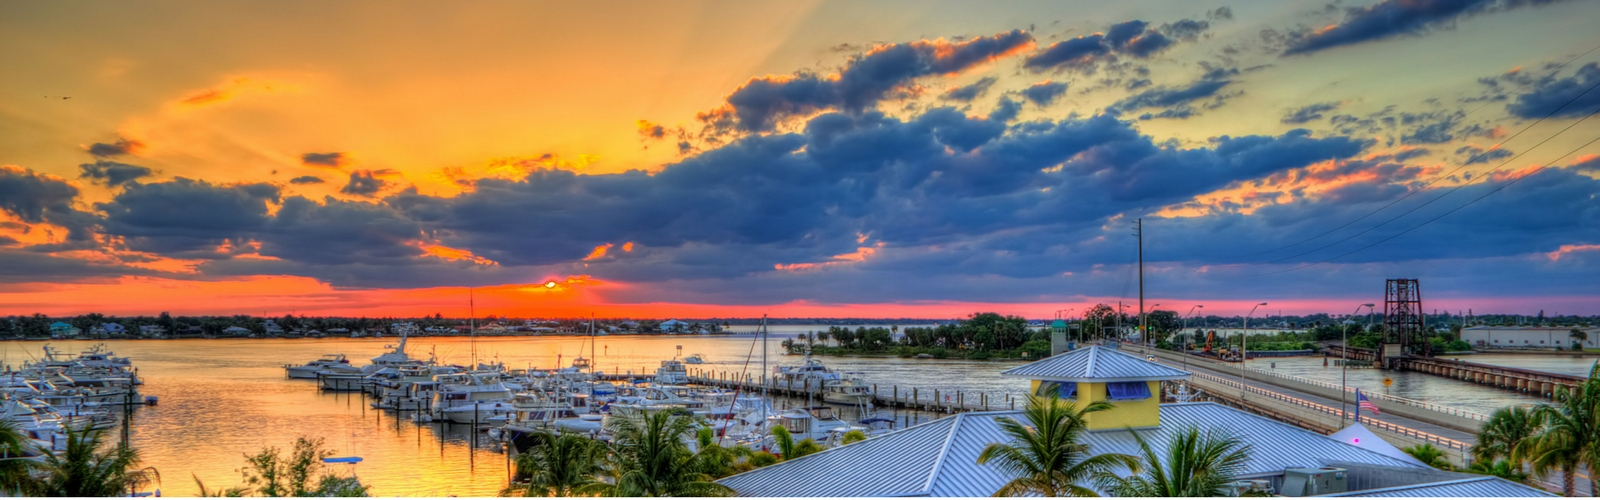 5 Reasons to be Thankful You Live on the Treasure Coast